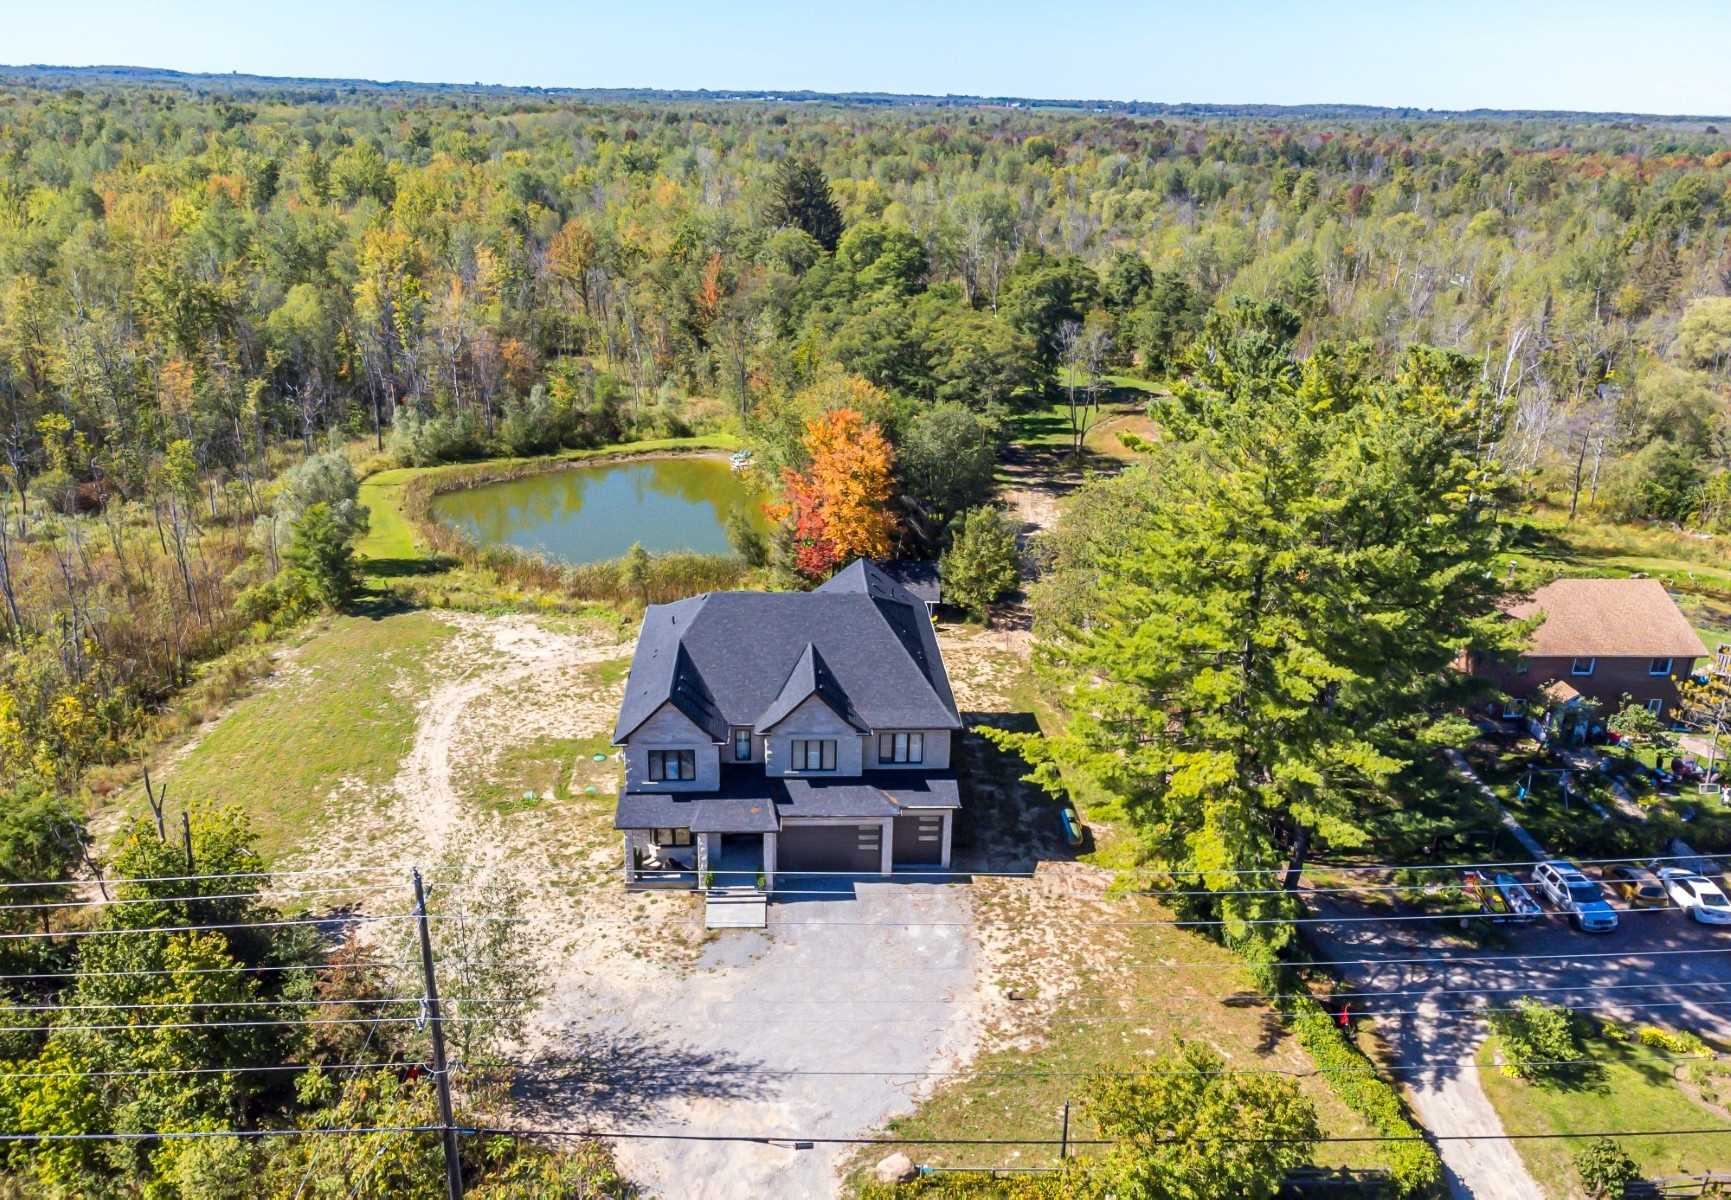 Detached house For Sale In East Gwillimbury - 21372 Highway 48, East Gwillimbury, Ontario, Canada L0G 1M0 , 5 Bedrooms Bedrooms, ,6 BathroomsBathrooms,Detached,For Sale,Highway 48